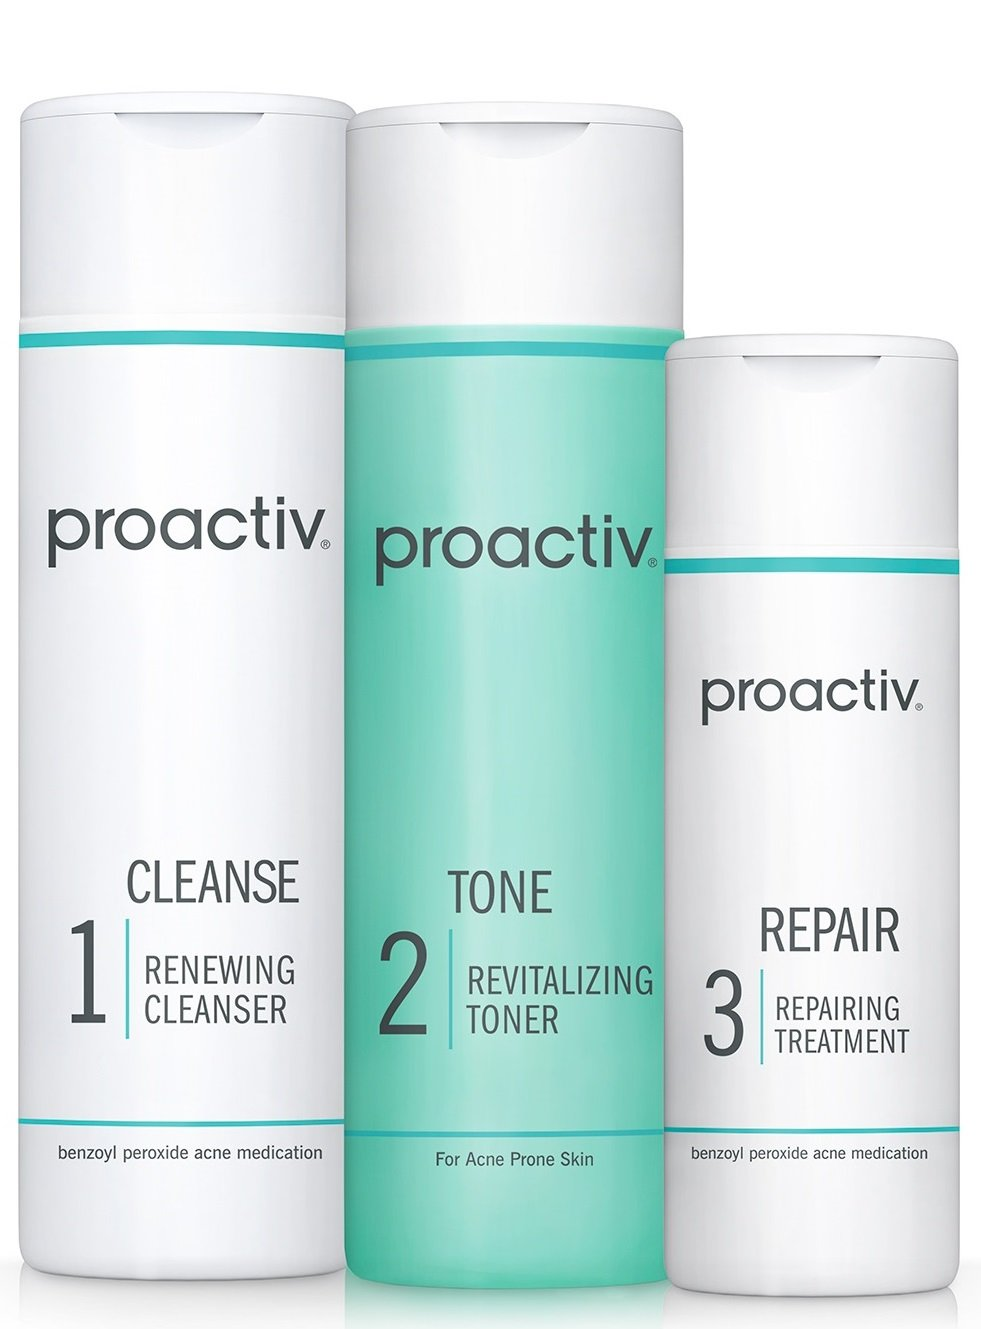 Proactiv Solution 3-Step Acne Treatment System (60 Day Original Acne Kit) by Proactiv